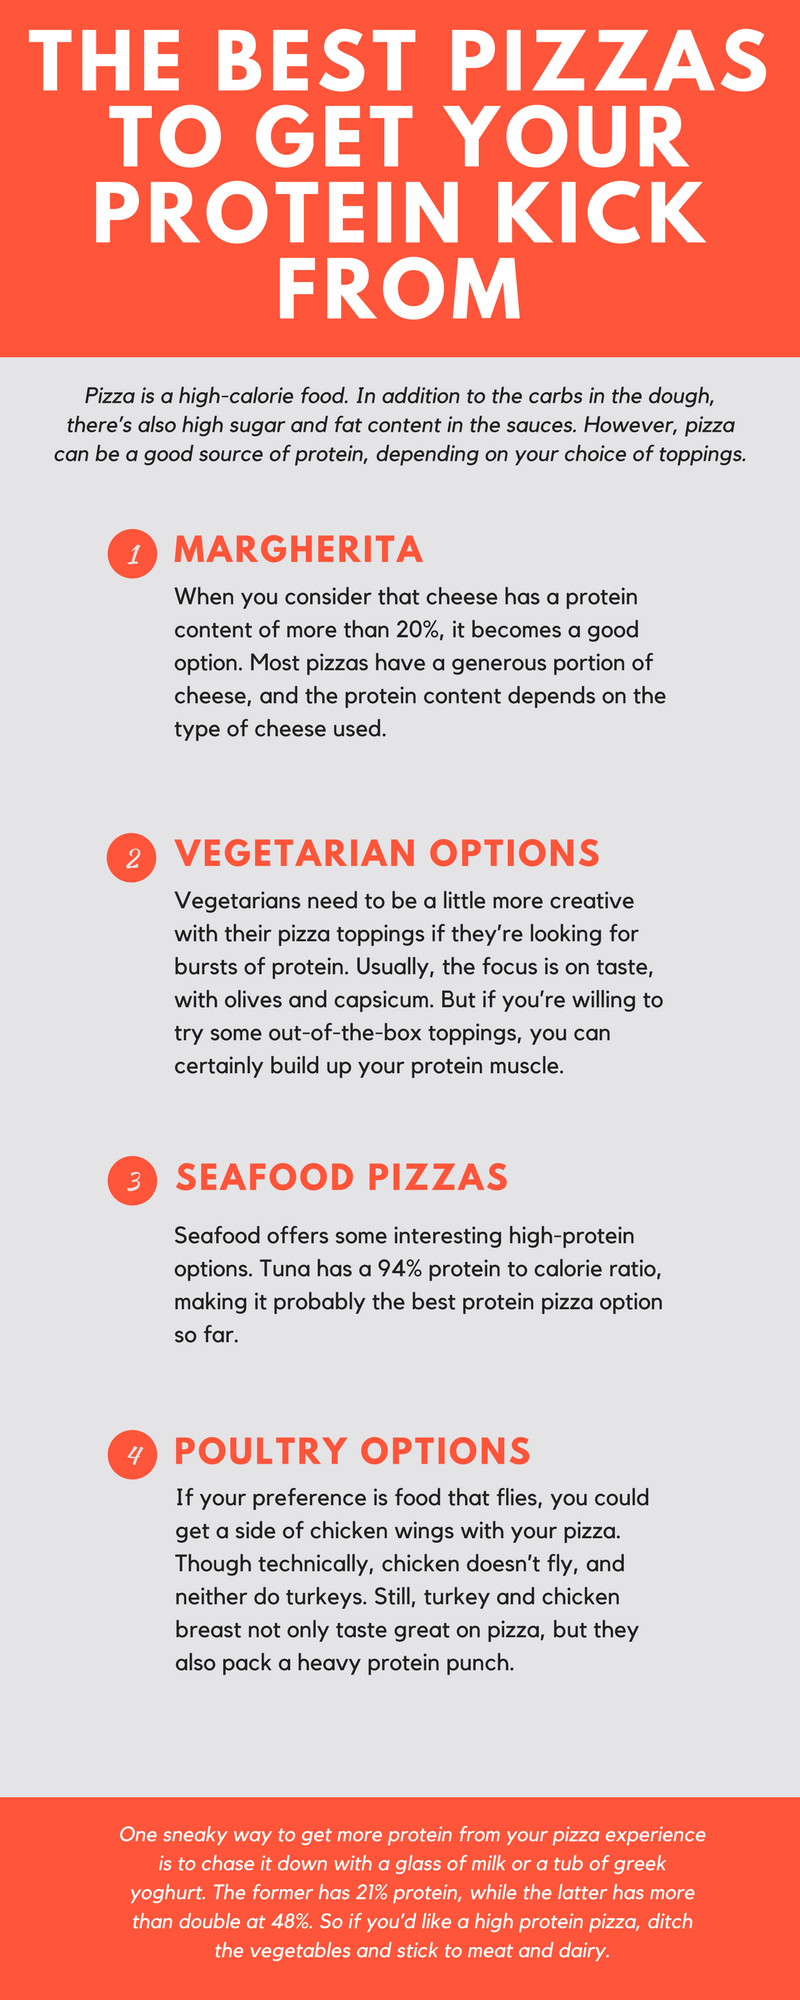 The best pizzas to get your protein kick from